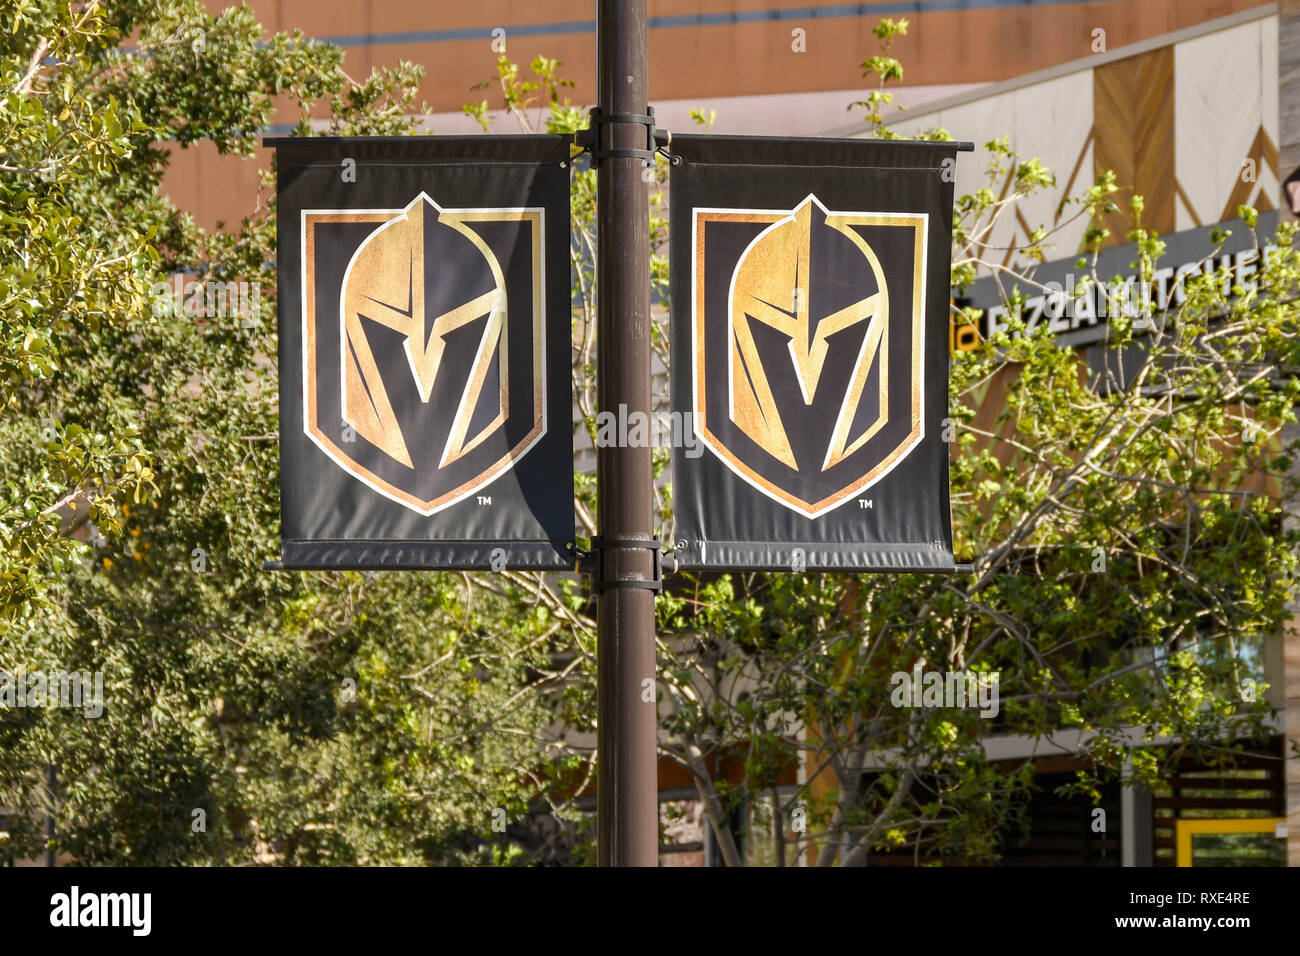 LAS VEGAS, NV, USA - FEBRUARY 2019: Banners on a lamp post in Las Vegas with the badge of the Golden Knights professional ice hockey team, which is ba - Stock Image